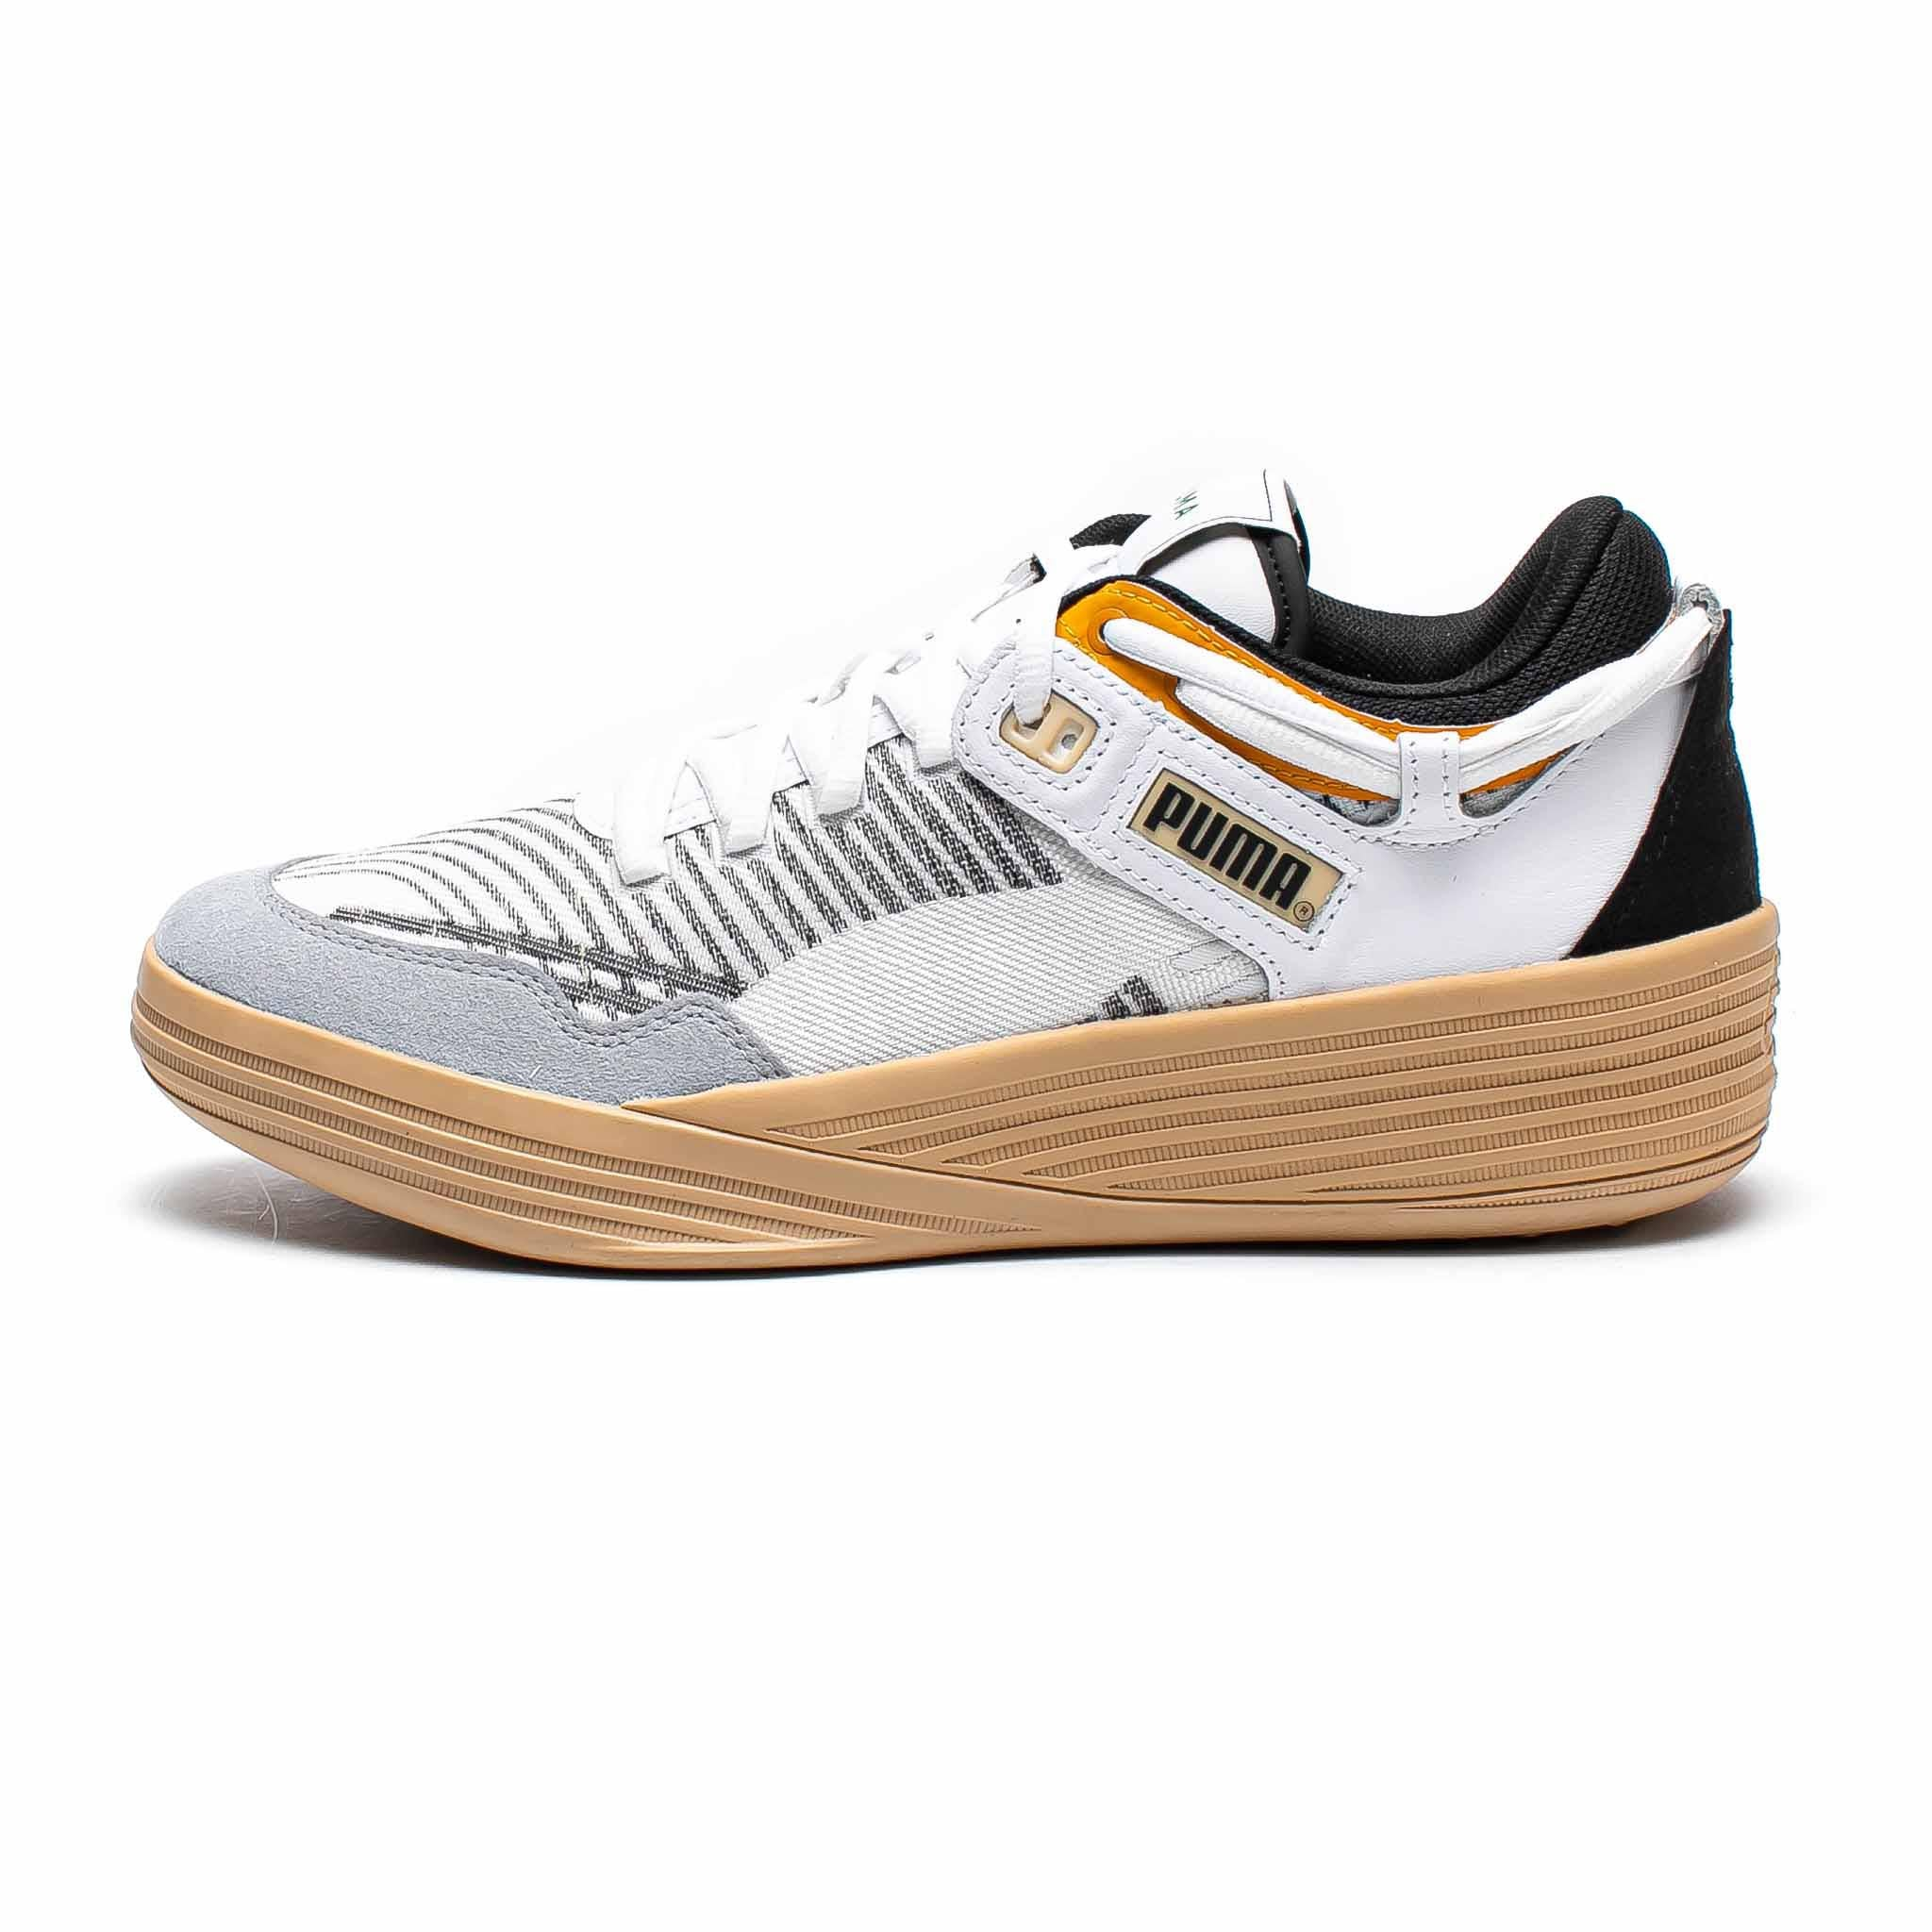 Puma Clyde All-Pro Kuzma Low